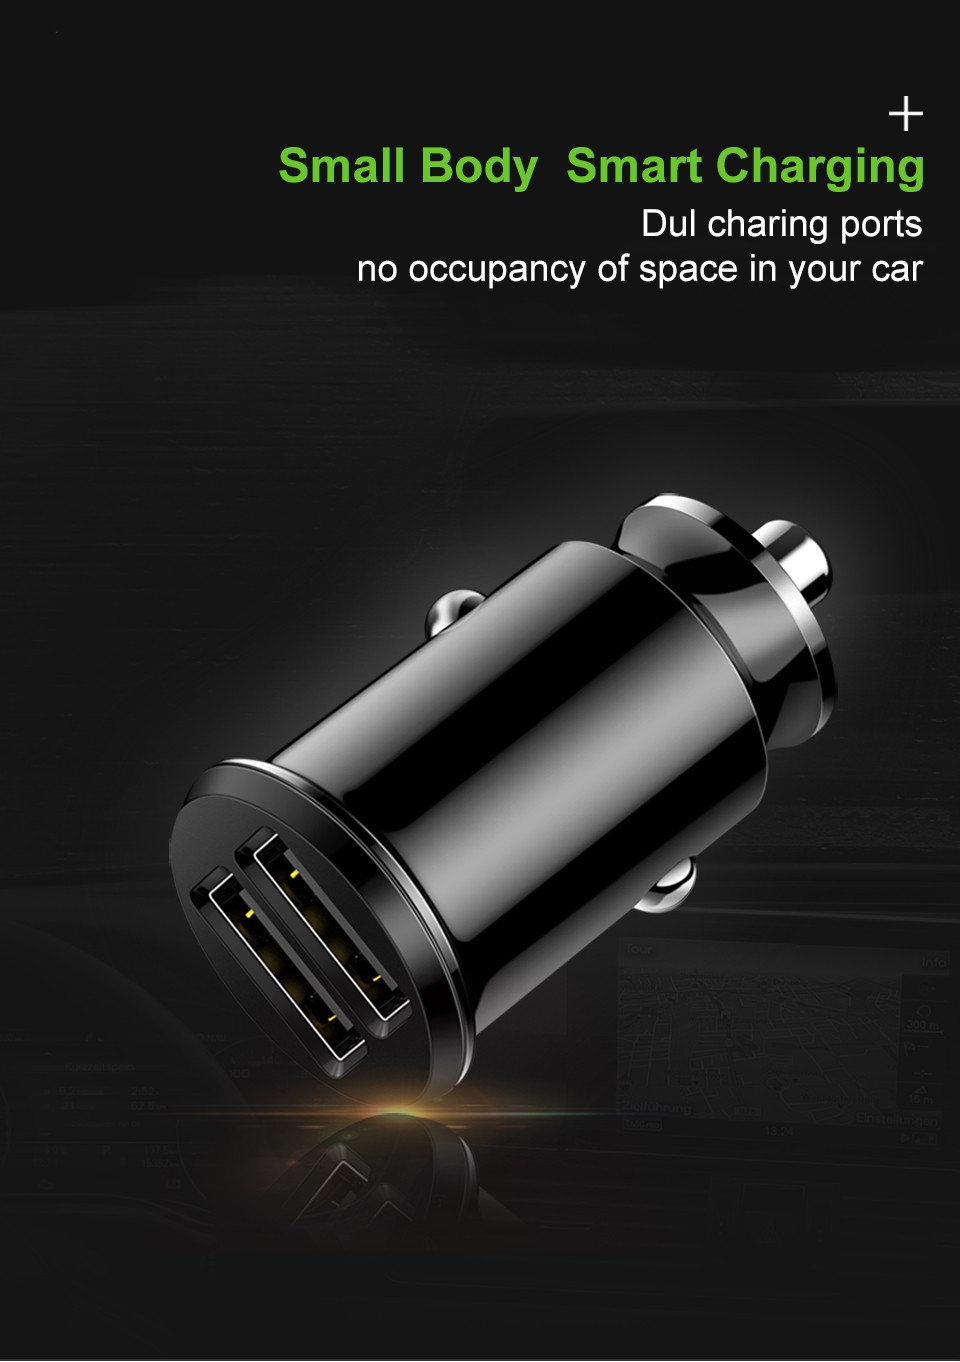 Mini USB Car Charger Adapter 3.1A With LED Universal Dual USB Phone Car-Charger for Samsung iPhone Xiaomi Mobile Phone Chargers (1)